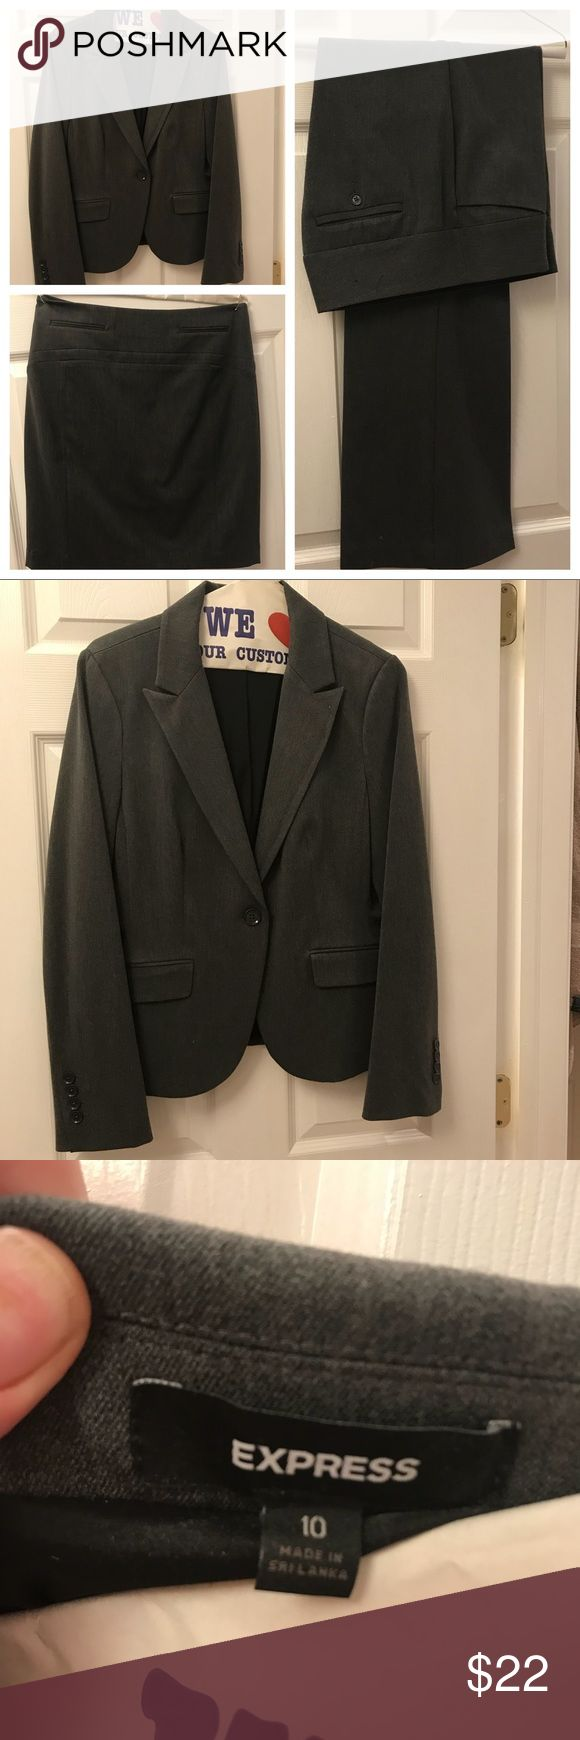 """EXPRESS 3pc suit Worn once for an interview! Fresh from the dry cleaner. Beautiful EXPRESS suit set in gray.  Skirt, jacket and pants in """"editor"""" style. Excellent pristine condition. Comes with suit bag!  Jacket size- 10 Pants size- 6 Skirt size- 4  Fits me well as a medium build and tall.  Can be tailored for your personal fit. Express Jackets & Coats Blazers"""